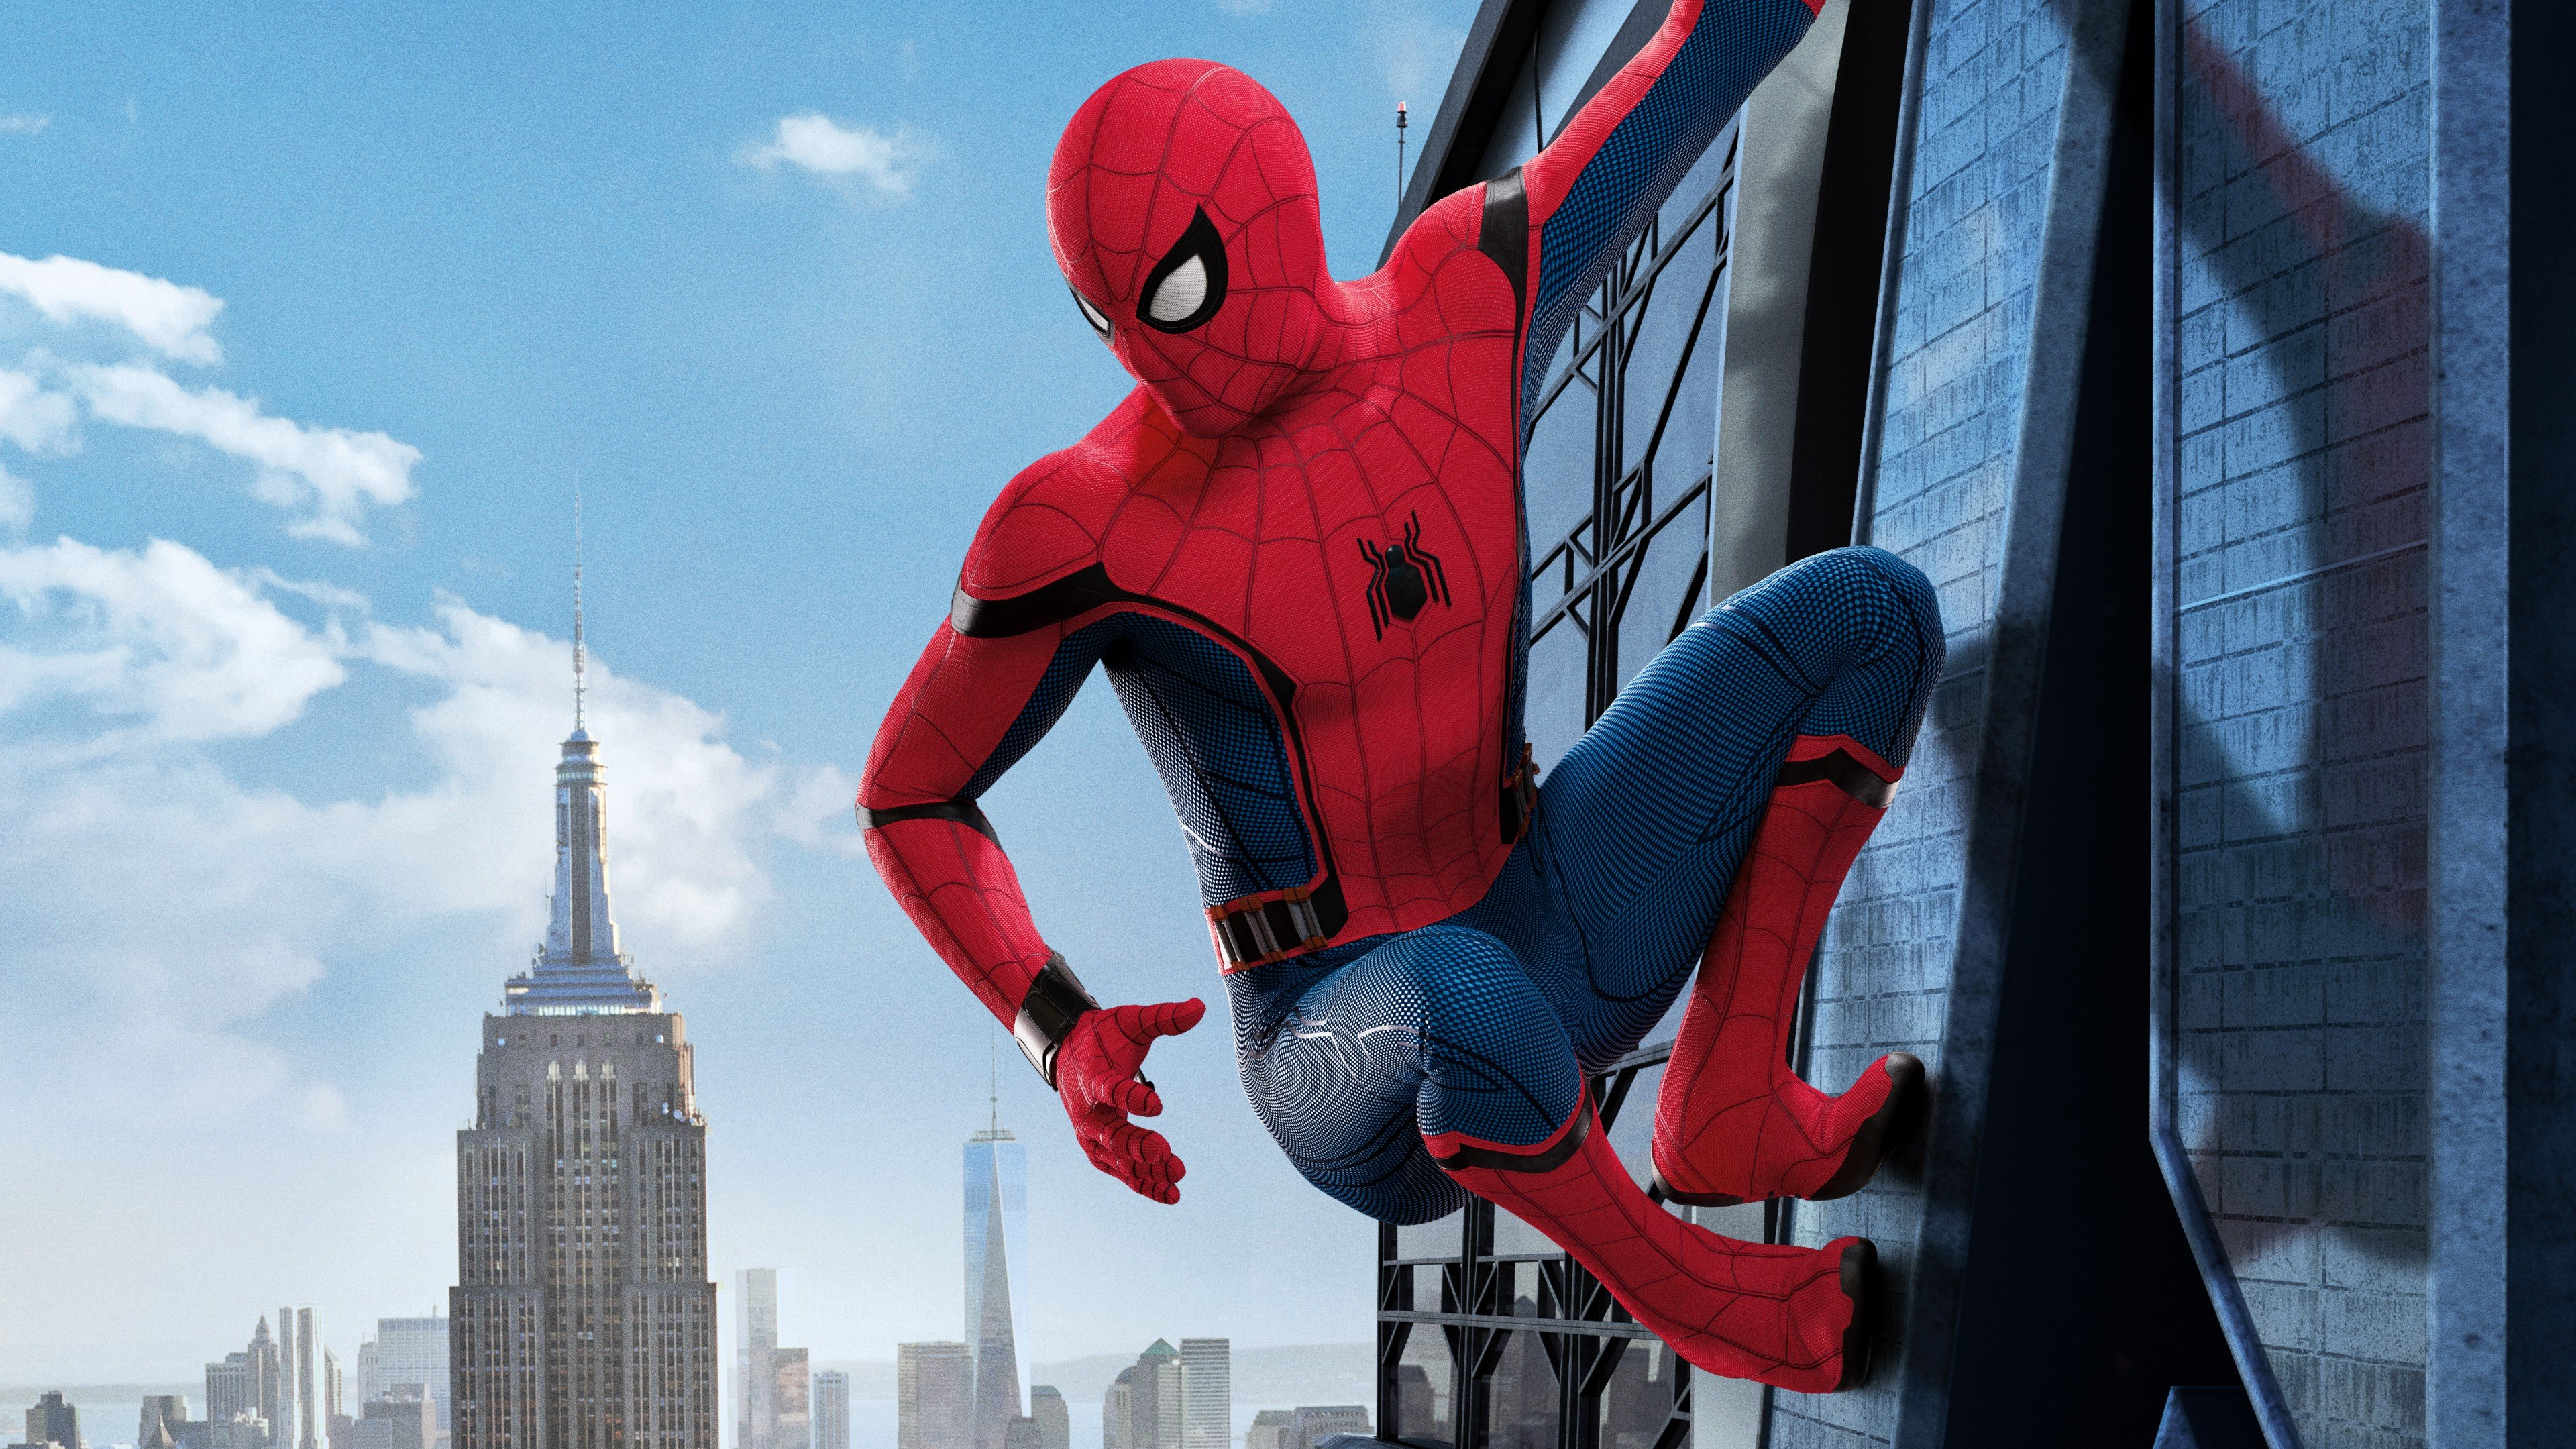 Spiderman Wallpaper on newwallpaperdownloadcom 3840x2160